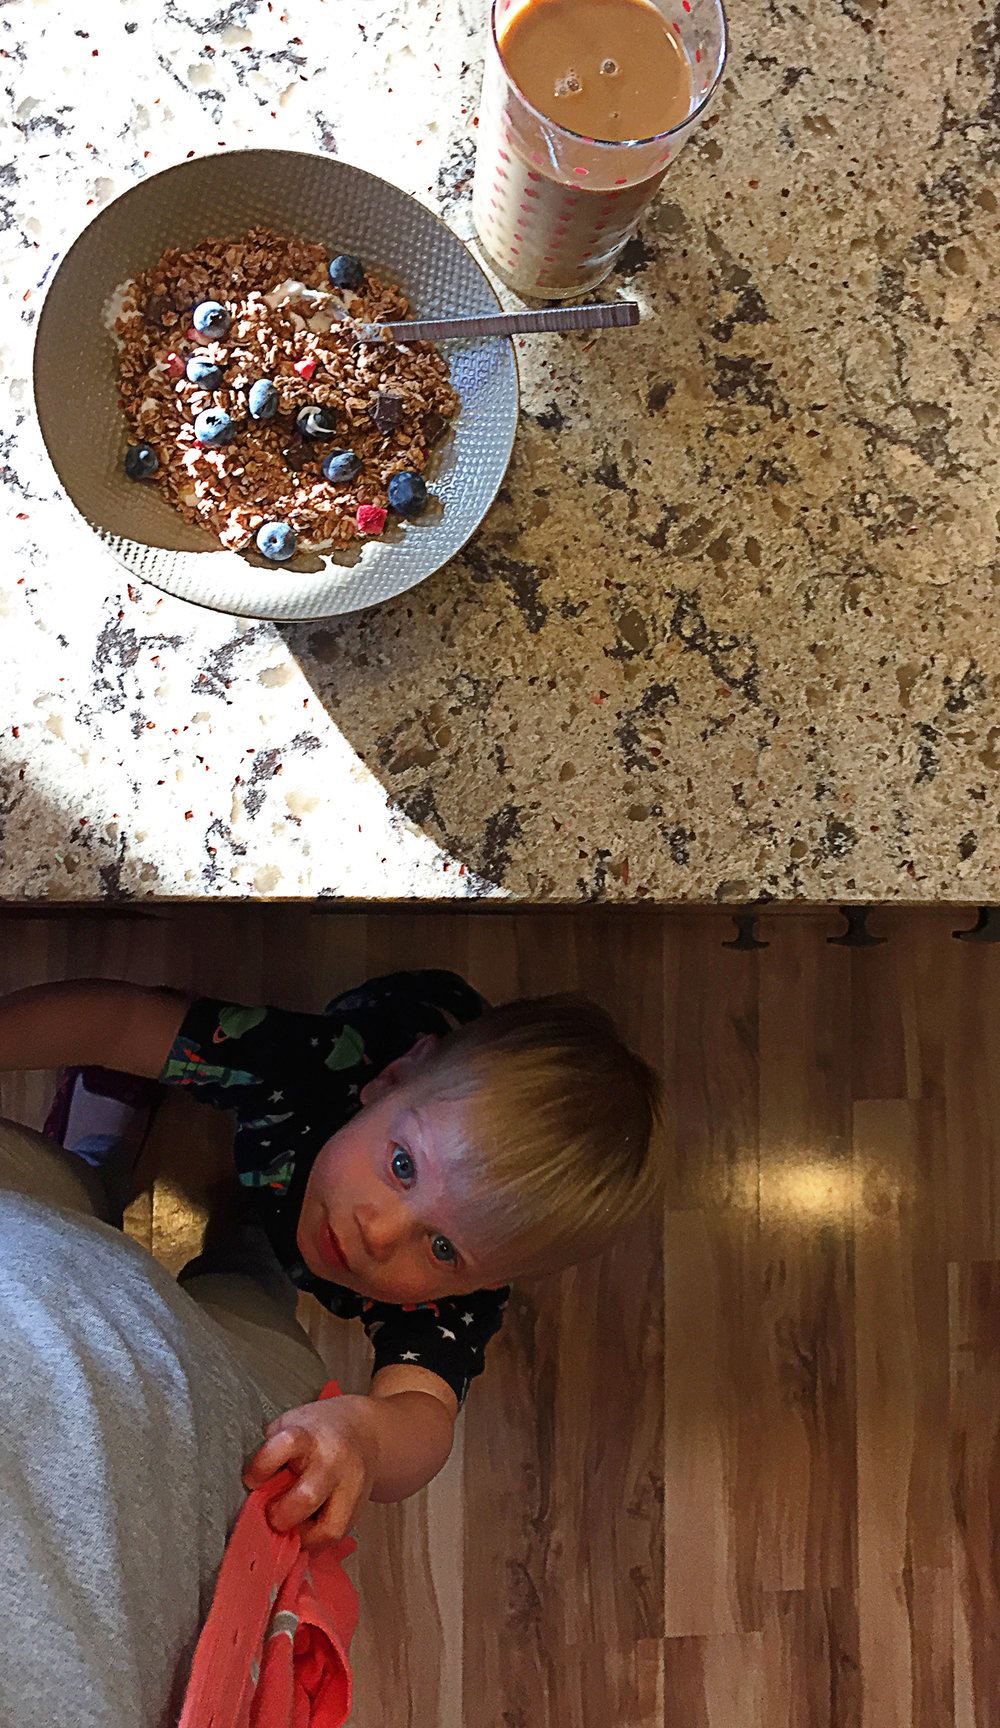 2017 05 04 Nolan Me Breakfast 02.jpg